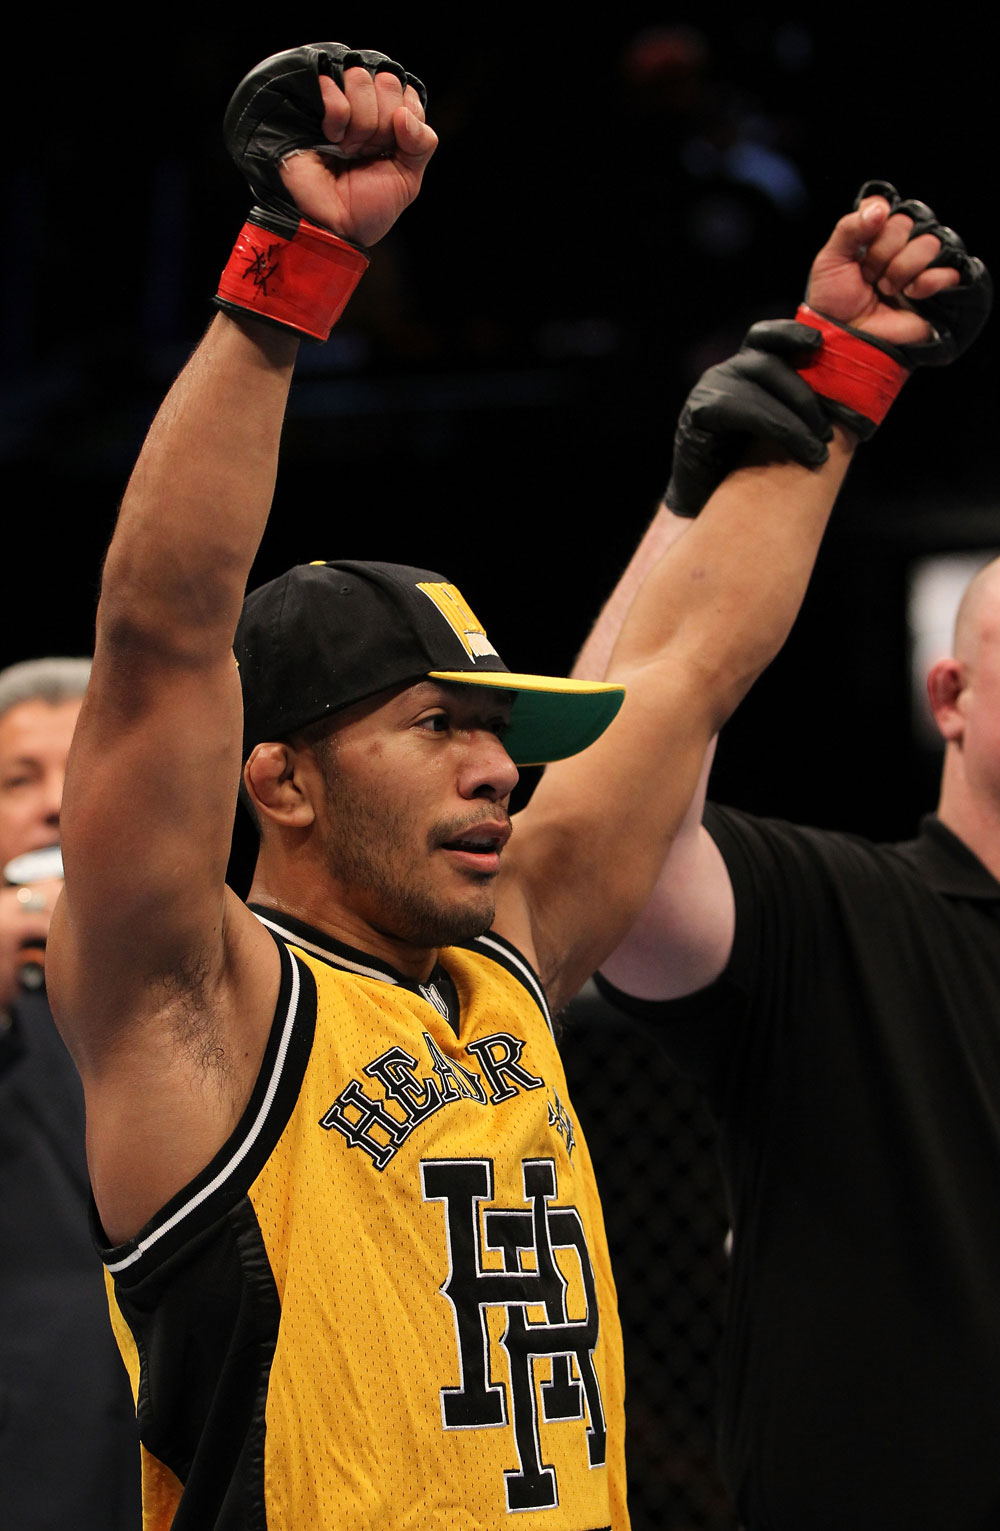 OMAHA, NE - FEBRUARY 15:  Ivan Menjivar reacts after defeating John Albert during the UFC on FUEL TV event at Omaha Civic Auditorium on February 15, 2012 in Omaha, Nebraska.  (Photo by Josh Hedges/Zuffa LLC/Zuffa LLC via Getty Images) *** Local Caption *** Ivan Menjivar